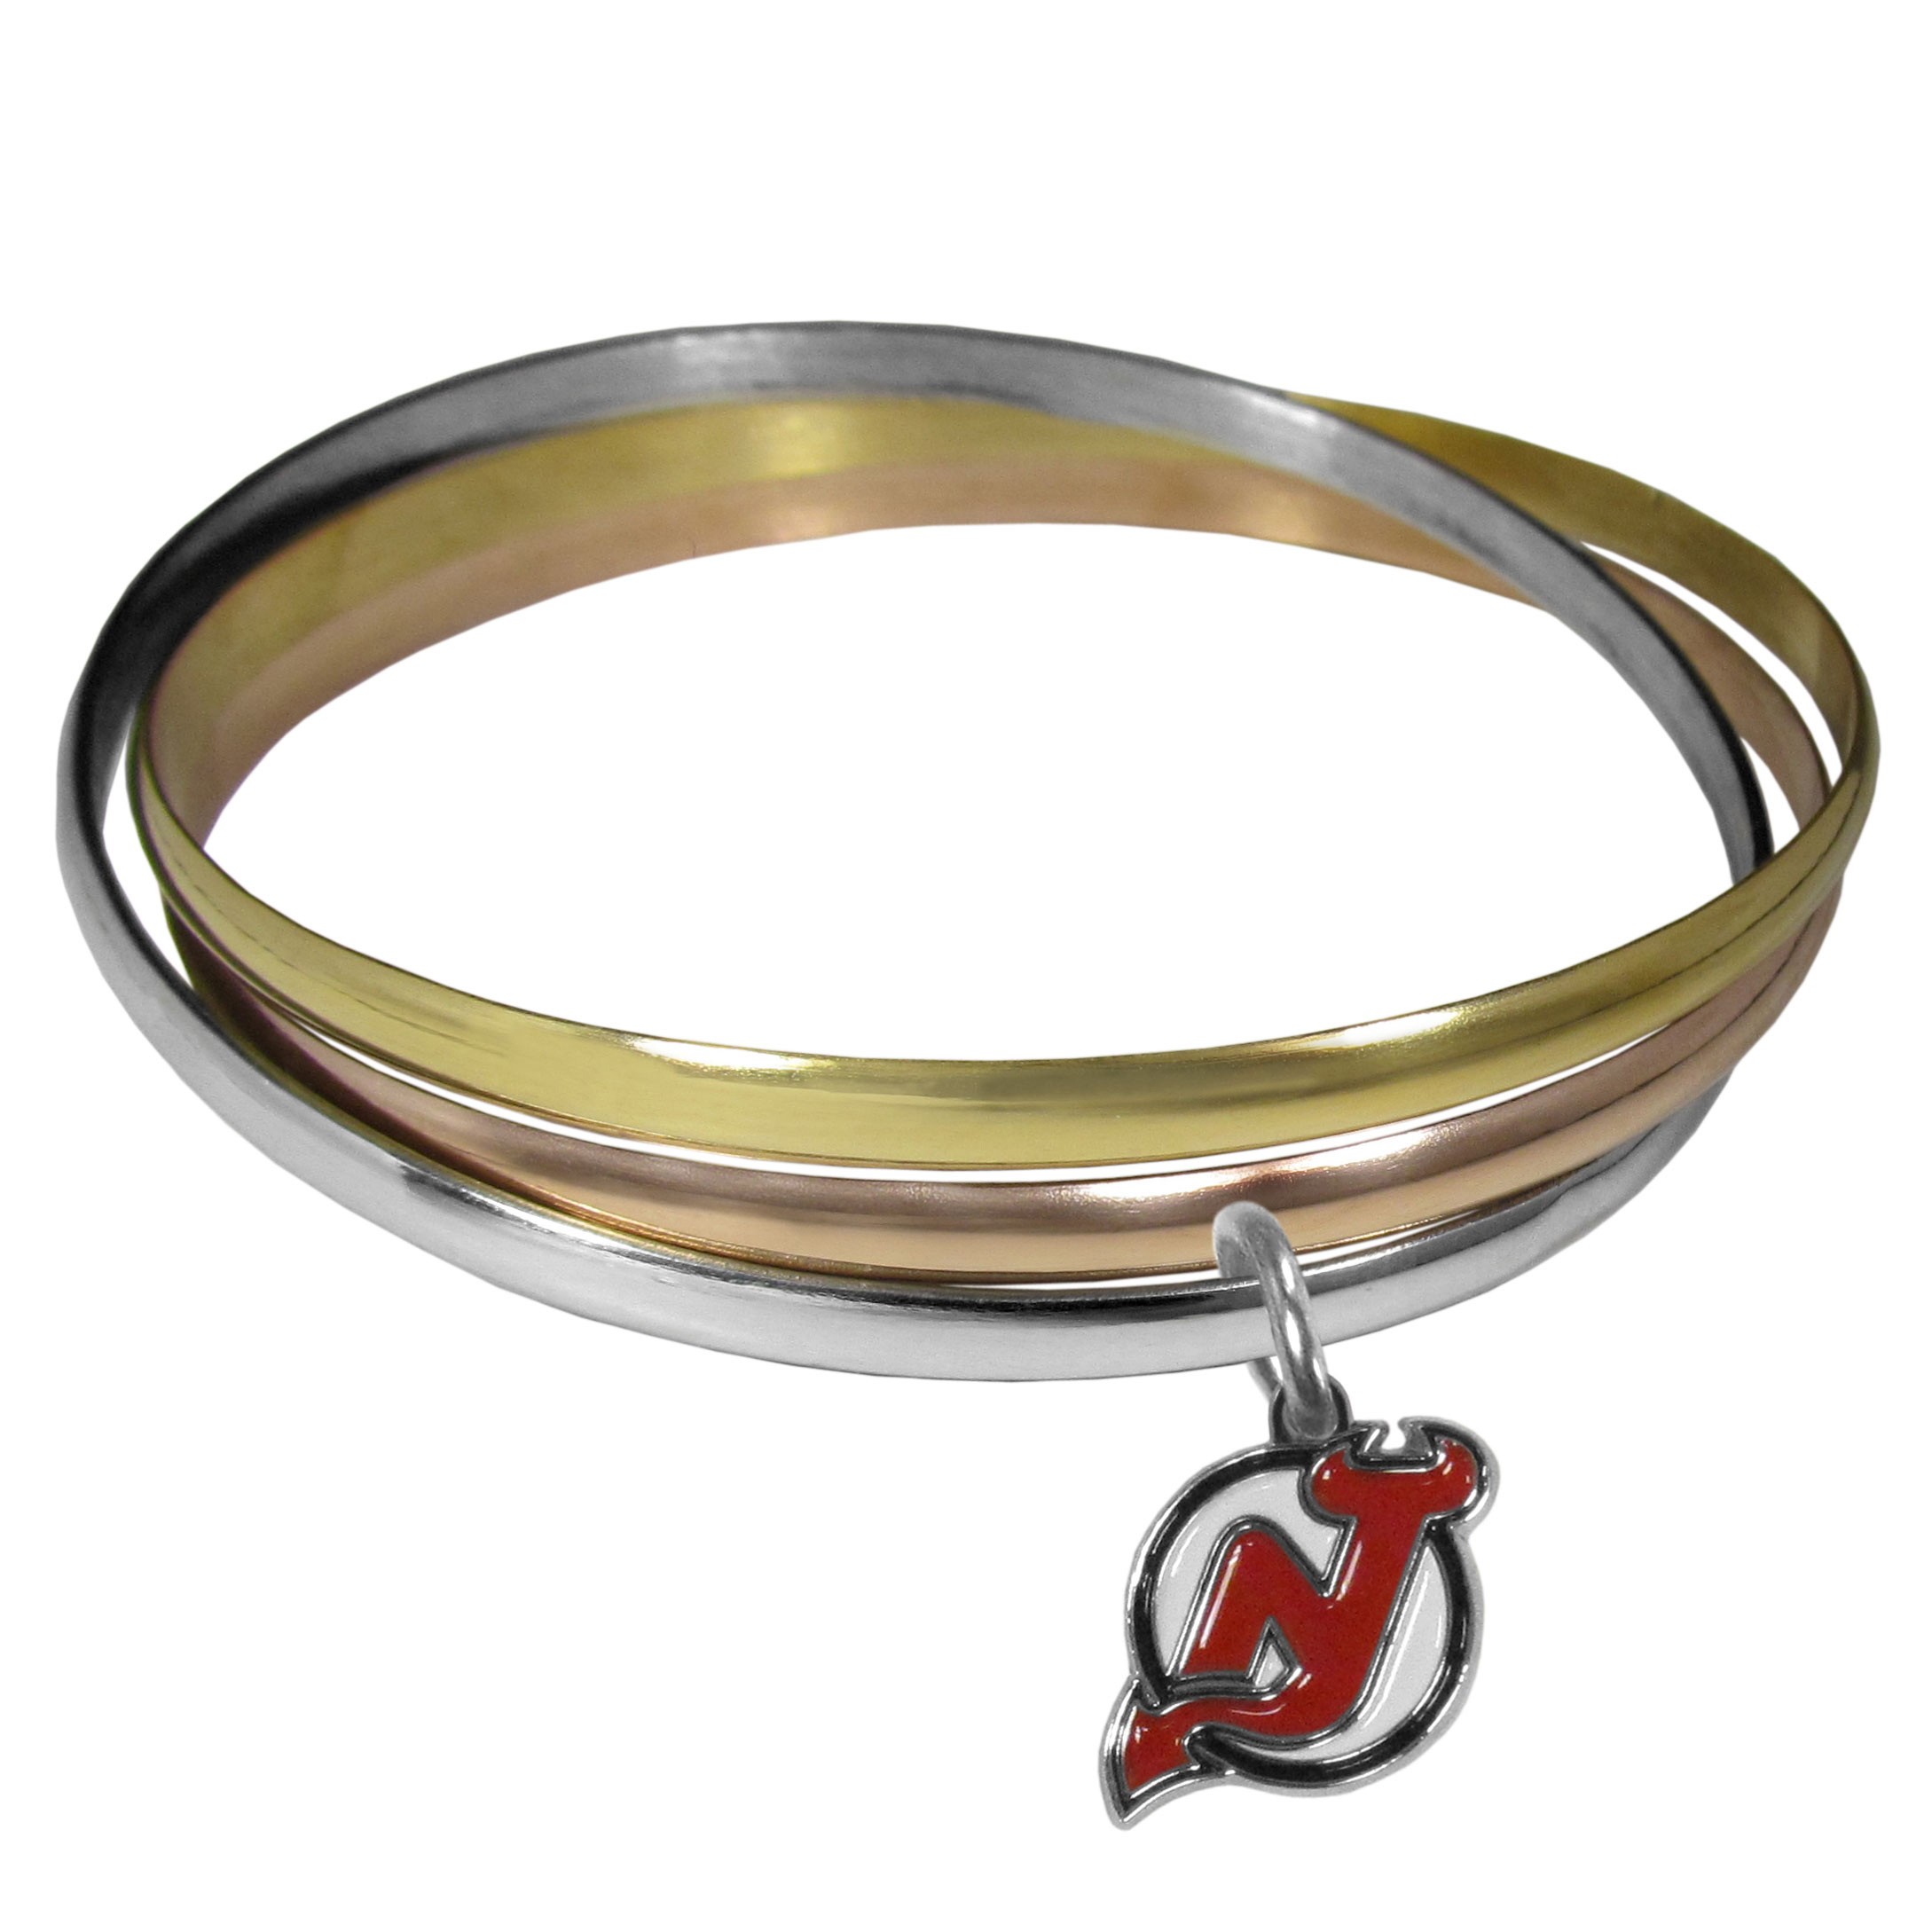 New Jersey Devils® Tri-color Bangle Bracelet - These beautiful bangles come in a interlocking style and feature a fully cast New Jersey Devils® charm with enameled team colors. The bracelet has a silver toned bangle, gold tone bangle and brass toned bangle.